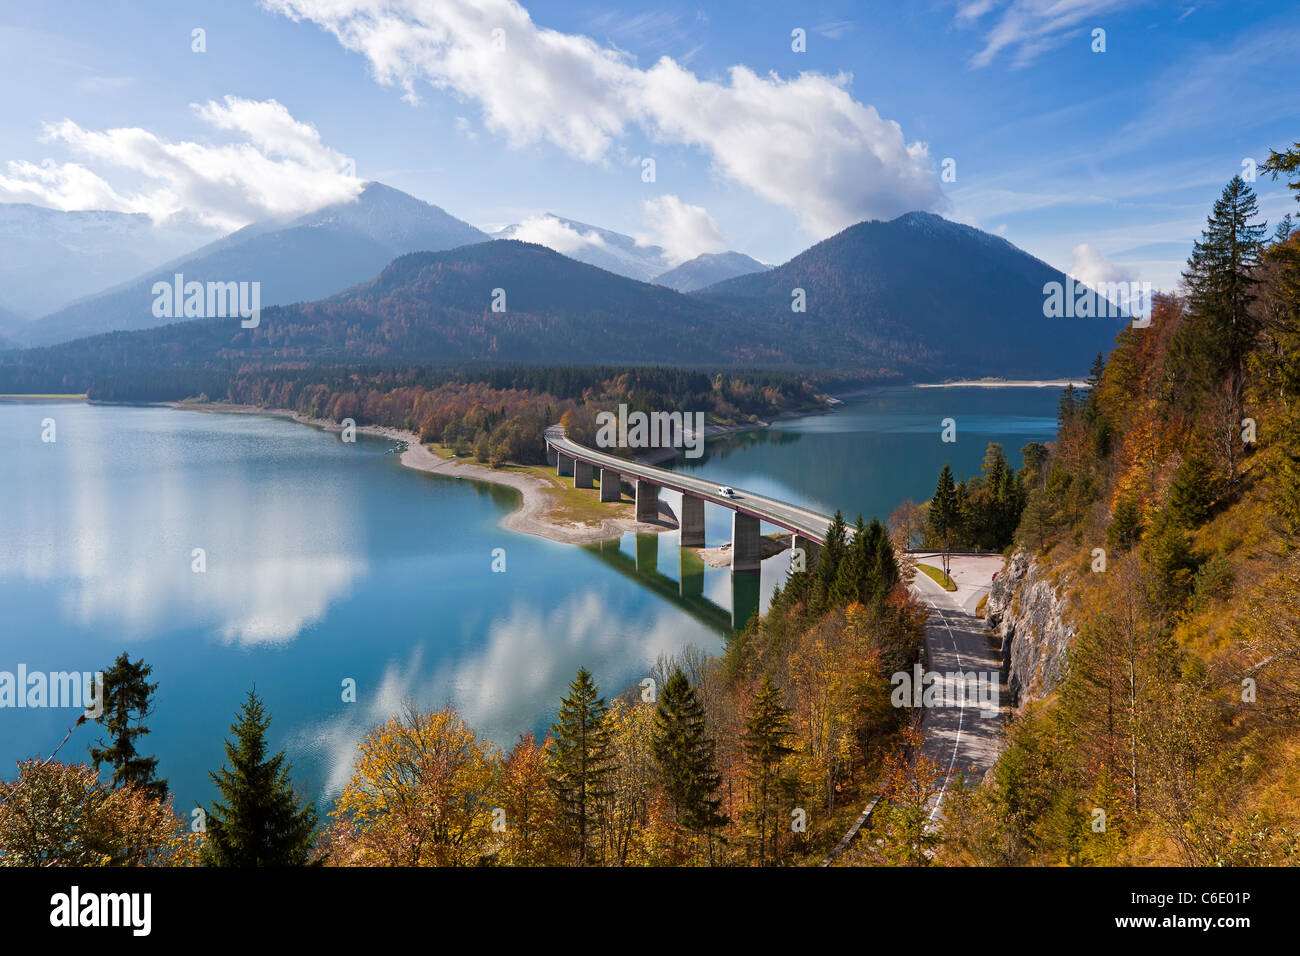 Reflections of a road bridge over Lake Sylvenstein, with mountains in the background, in Bavaria, Germany - Stock Image